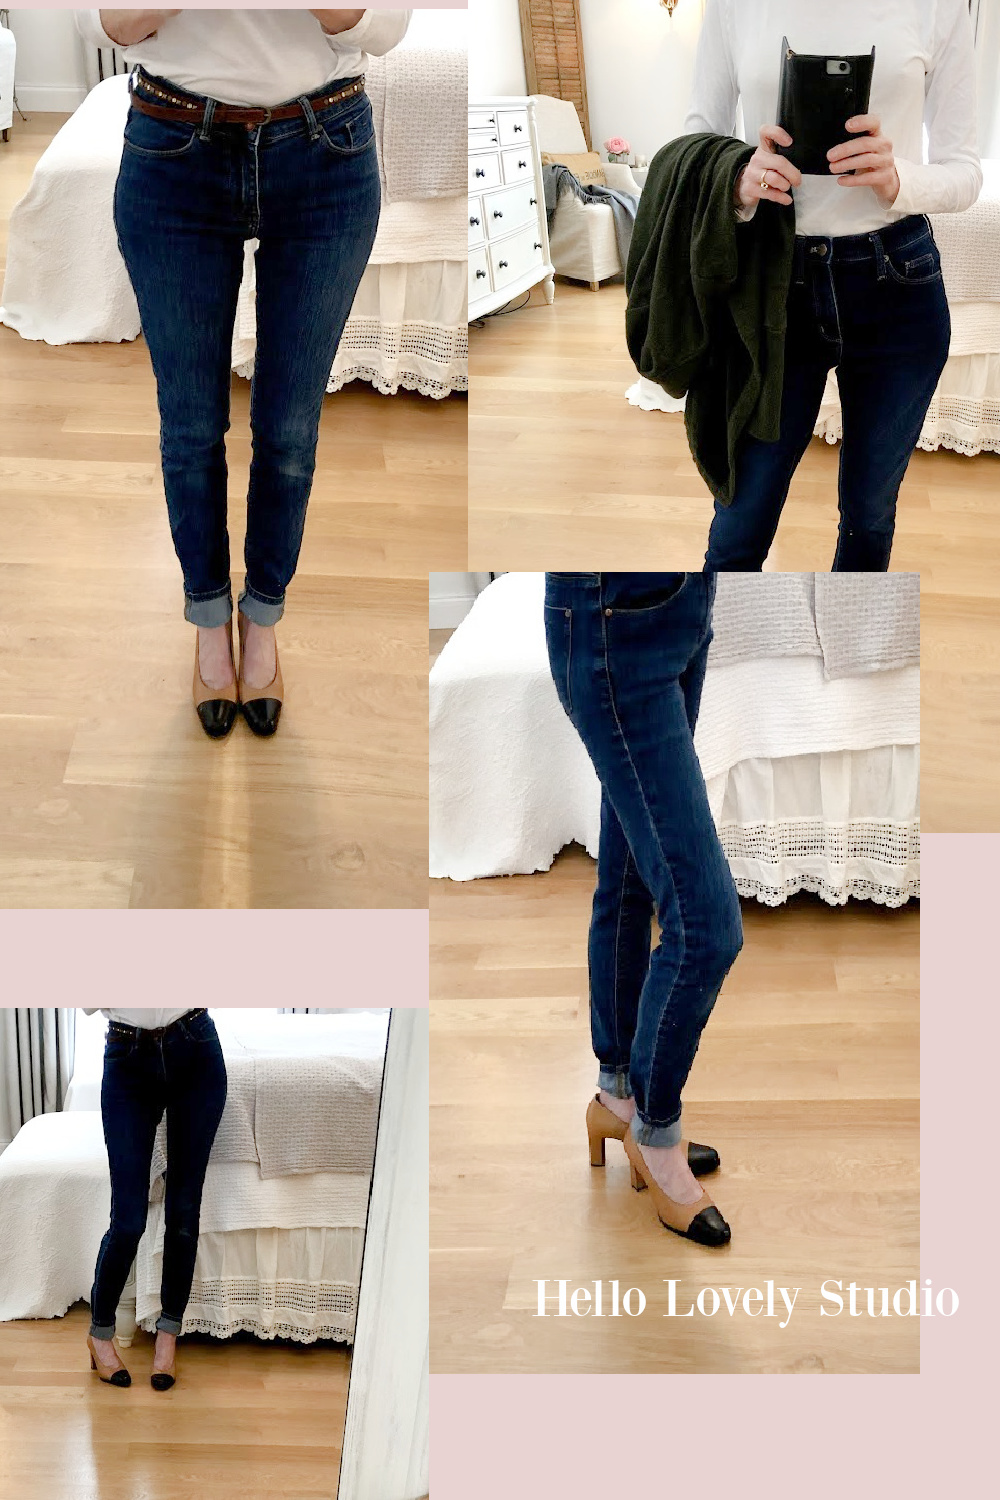 Hello Lovely Studio winter casual fashion over 50 - skinny jeans cuffed and vintage Gucci cap toe pumps. #fashionover50 #skinnyjeans #pumps #gucci